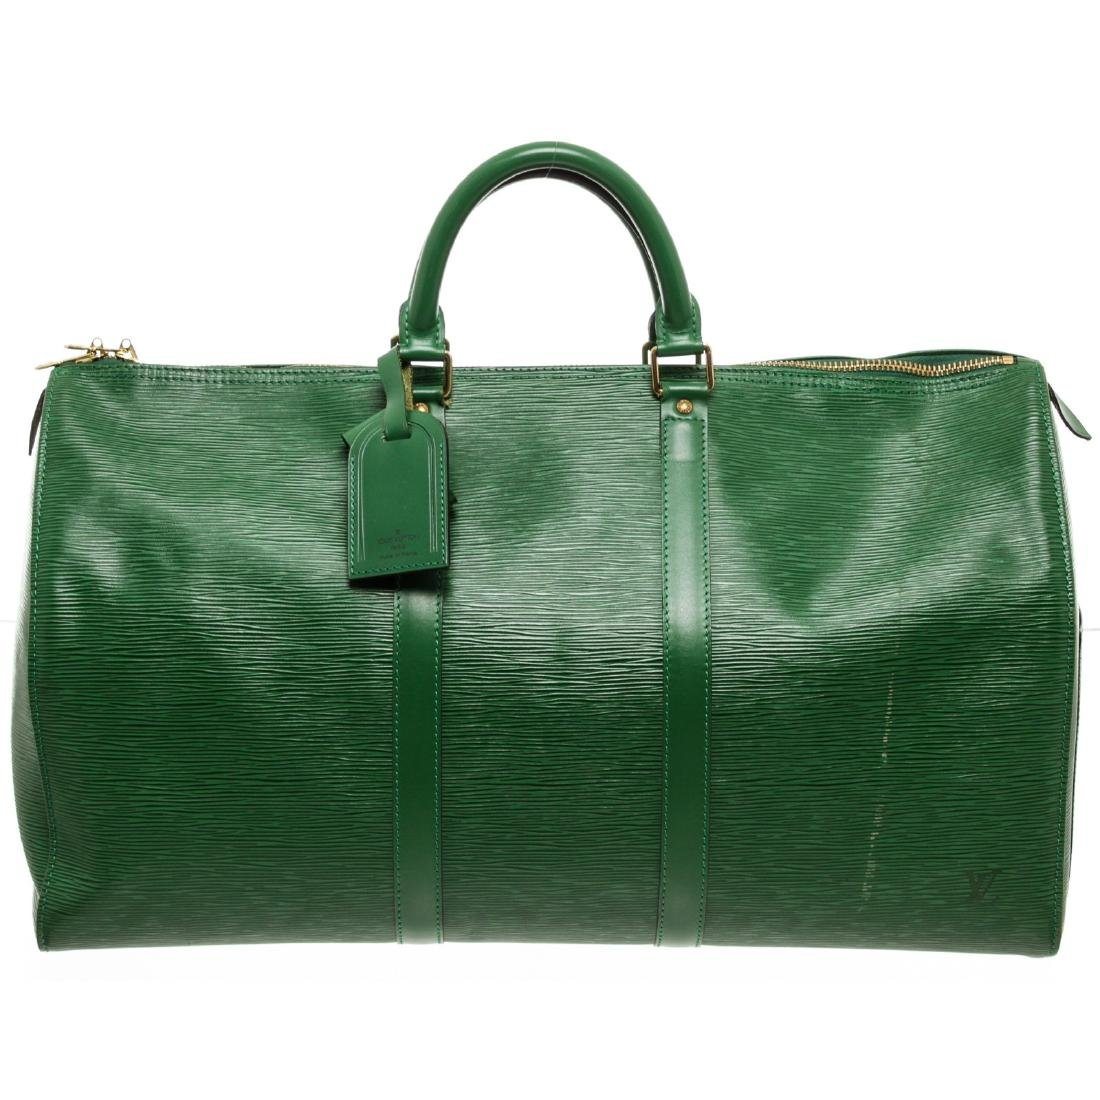 Louis Vuitton Green Epi Leather Keepall 55 cm Duffle